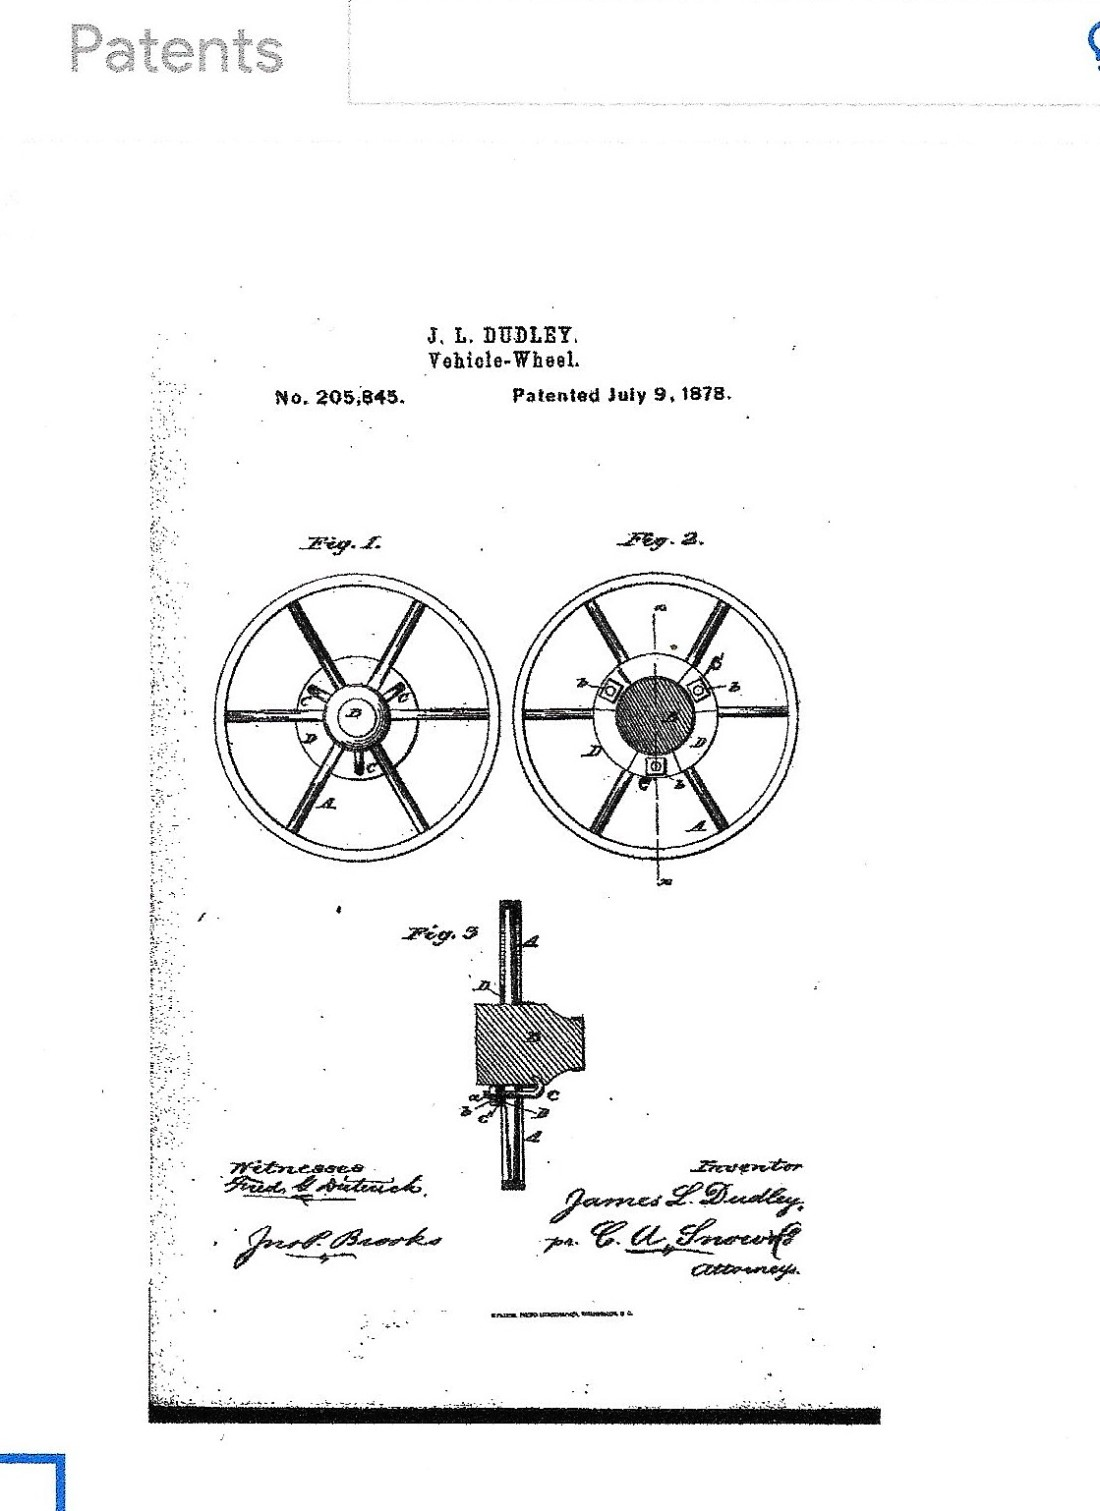 Dudley, James Lyon, invention wheel brace 001